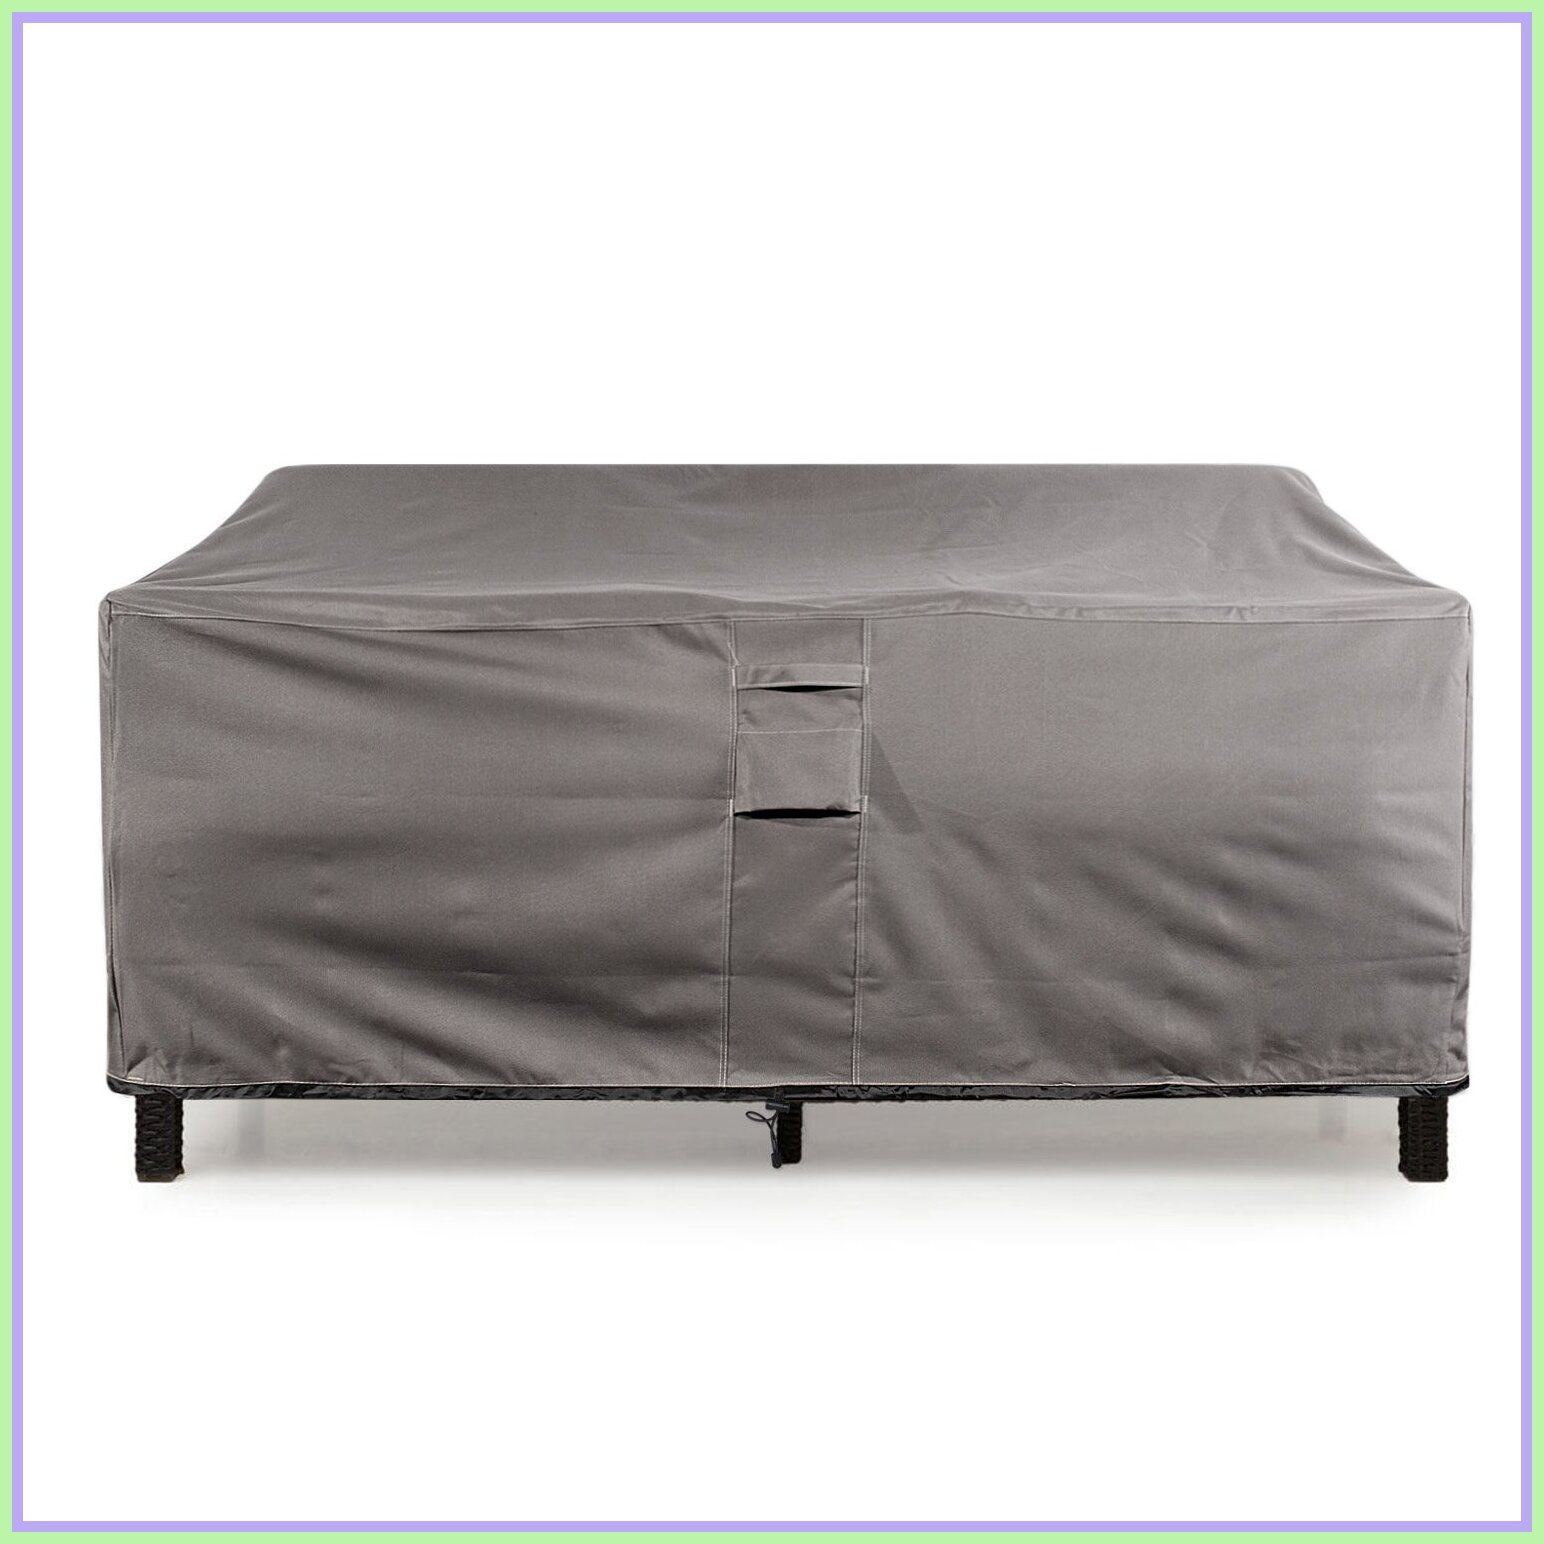 41 Reference Of Sofa Cover Waterproof Amazon In 2020 Patio Sofa Grey Couch Covers Patio Furniture Covers